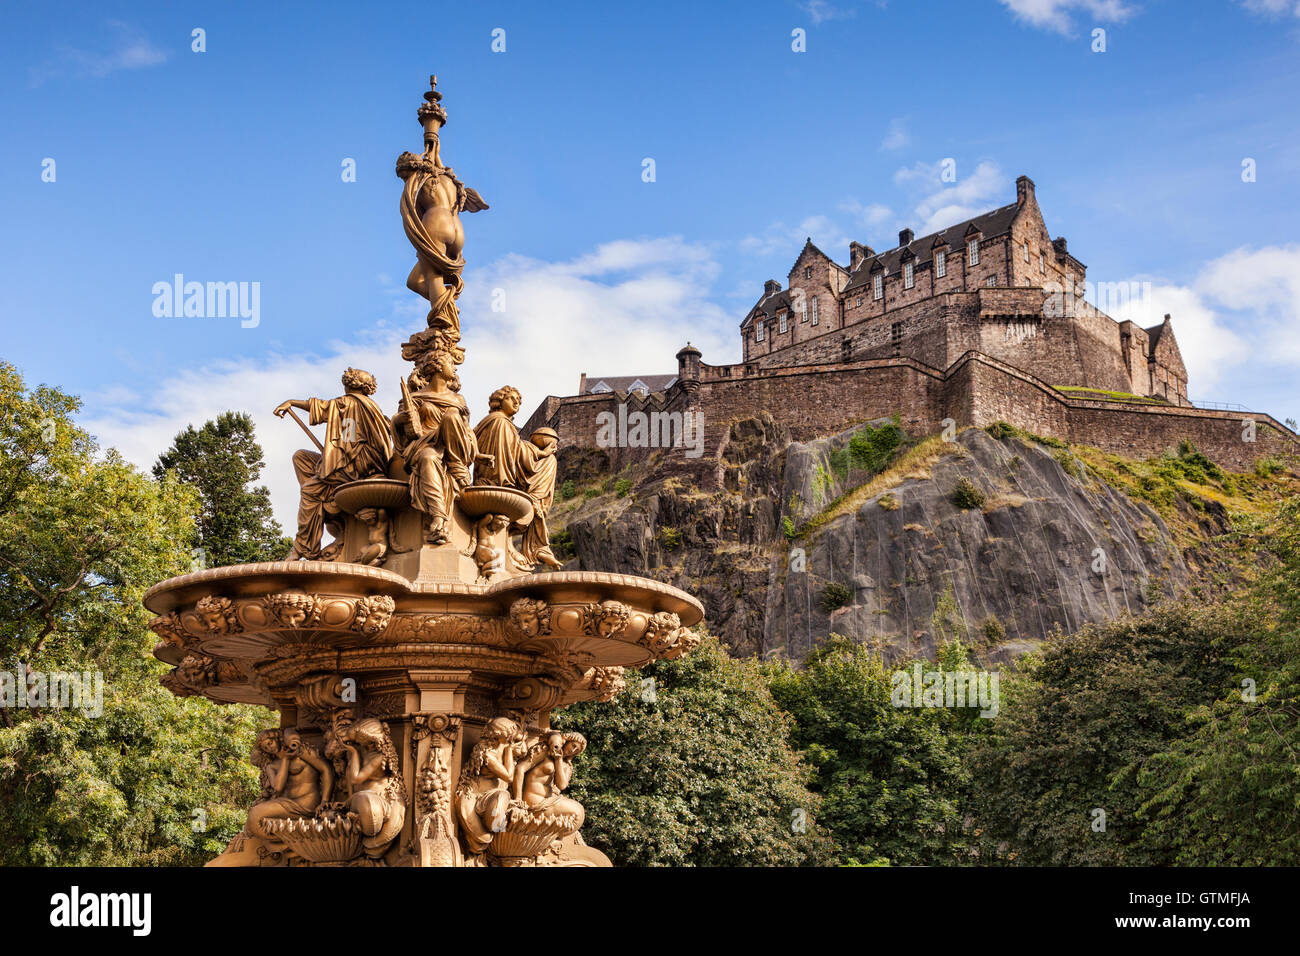 The Ross Fountain in Princes Street Gardens, and Edinburgh Castle, Scotland, UK. - Stock Image